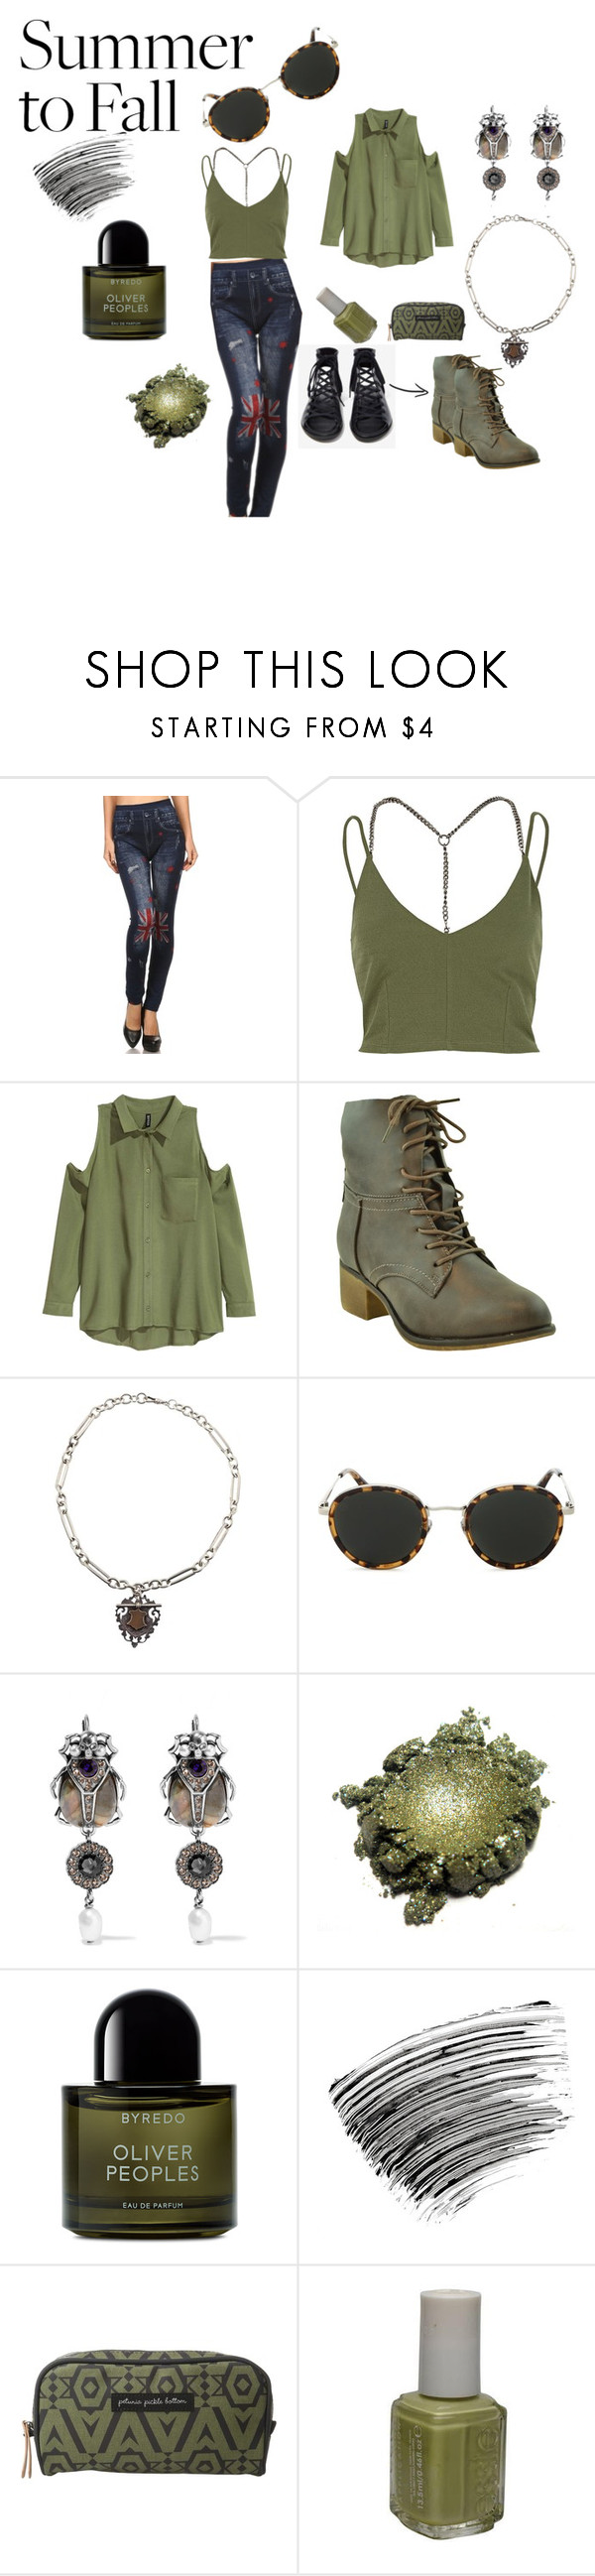 """""""BRIT PATCH JEANS ~ SUMMER TO FALL"""" by michelle858 ❤ liked on Polyvore featuring River Island, Jeffrey Campbell, Taylor Morris, Alexander McQueen, Byredo, Bobbi Brown Cosmetics, Petunia Pickle Bottom and Essie"""